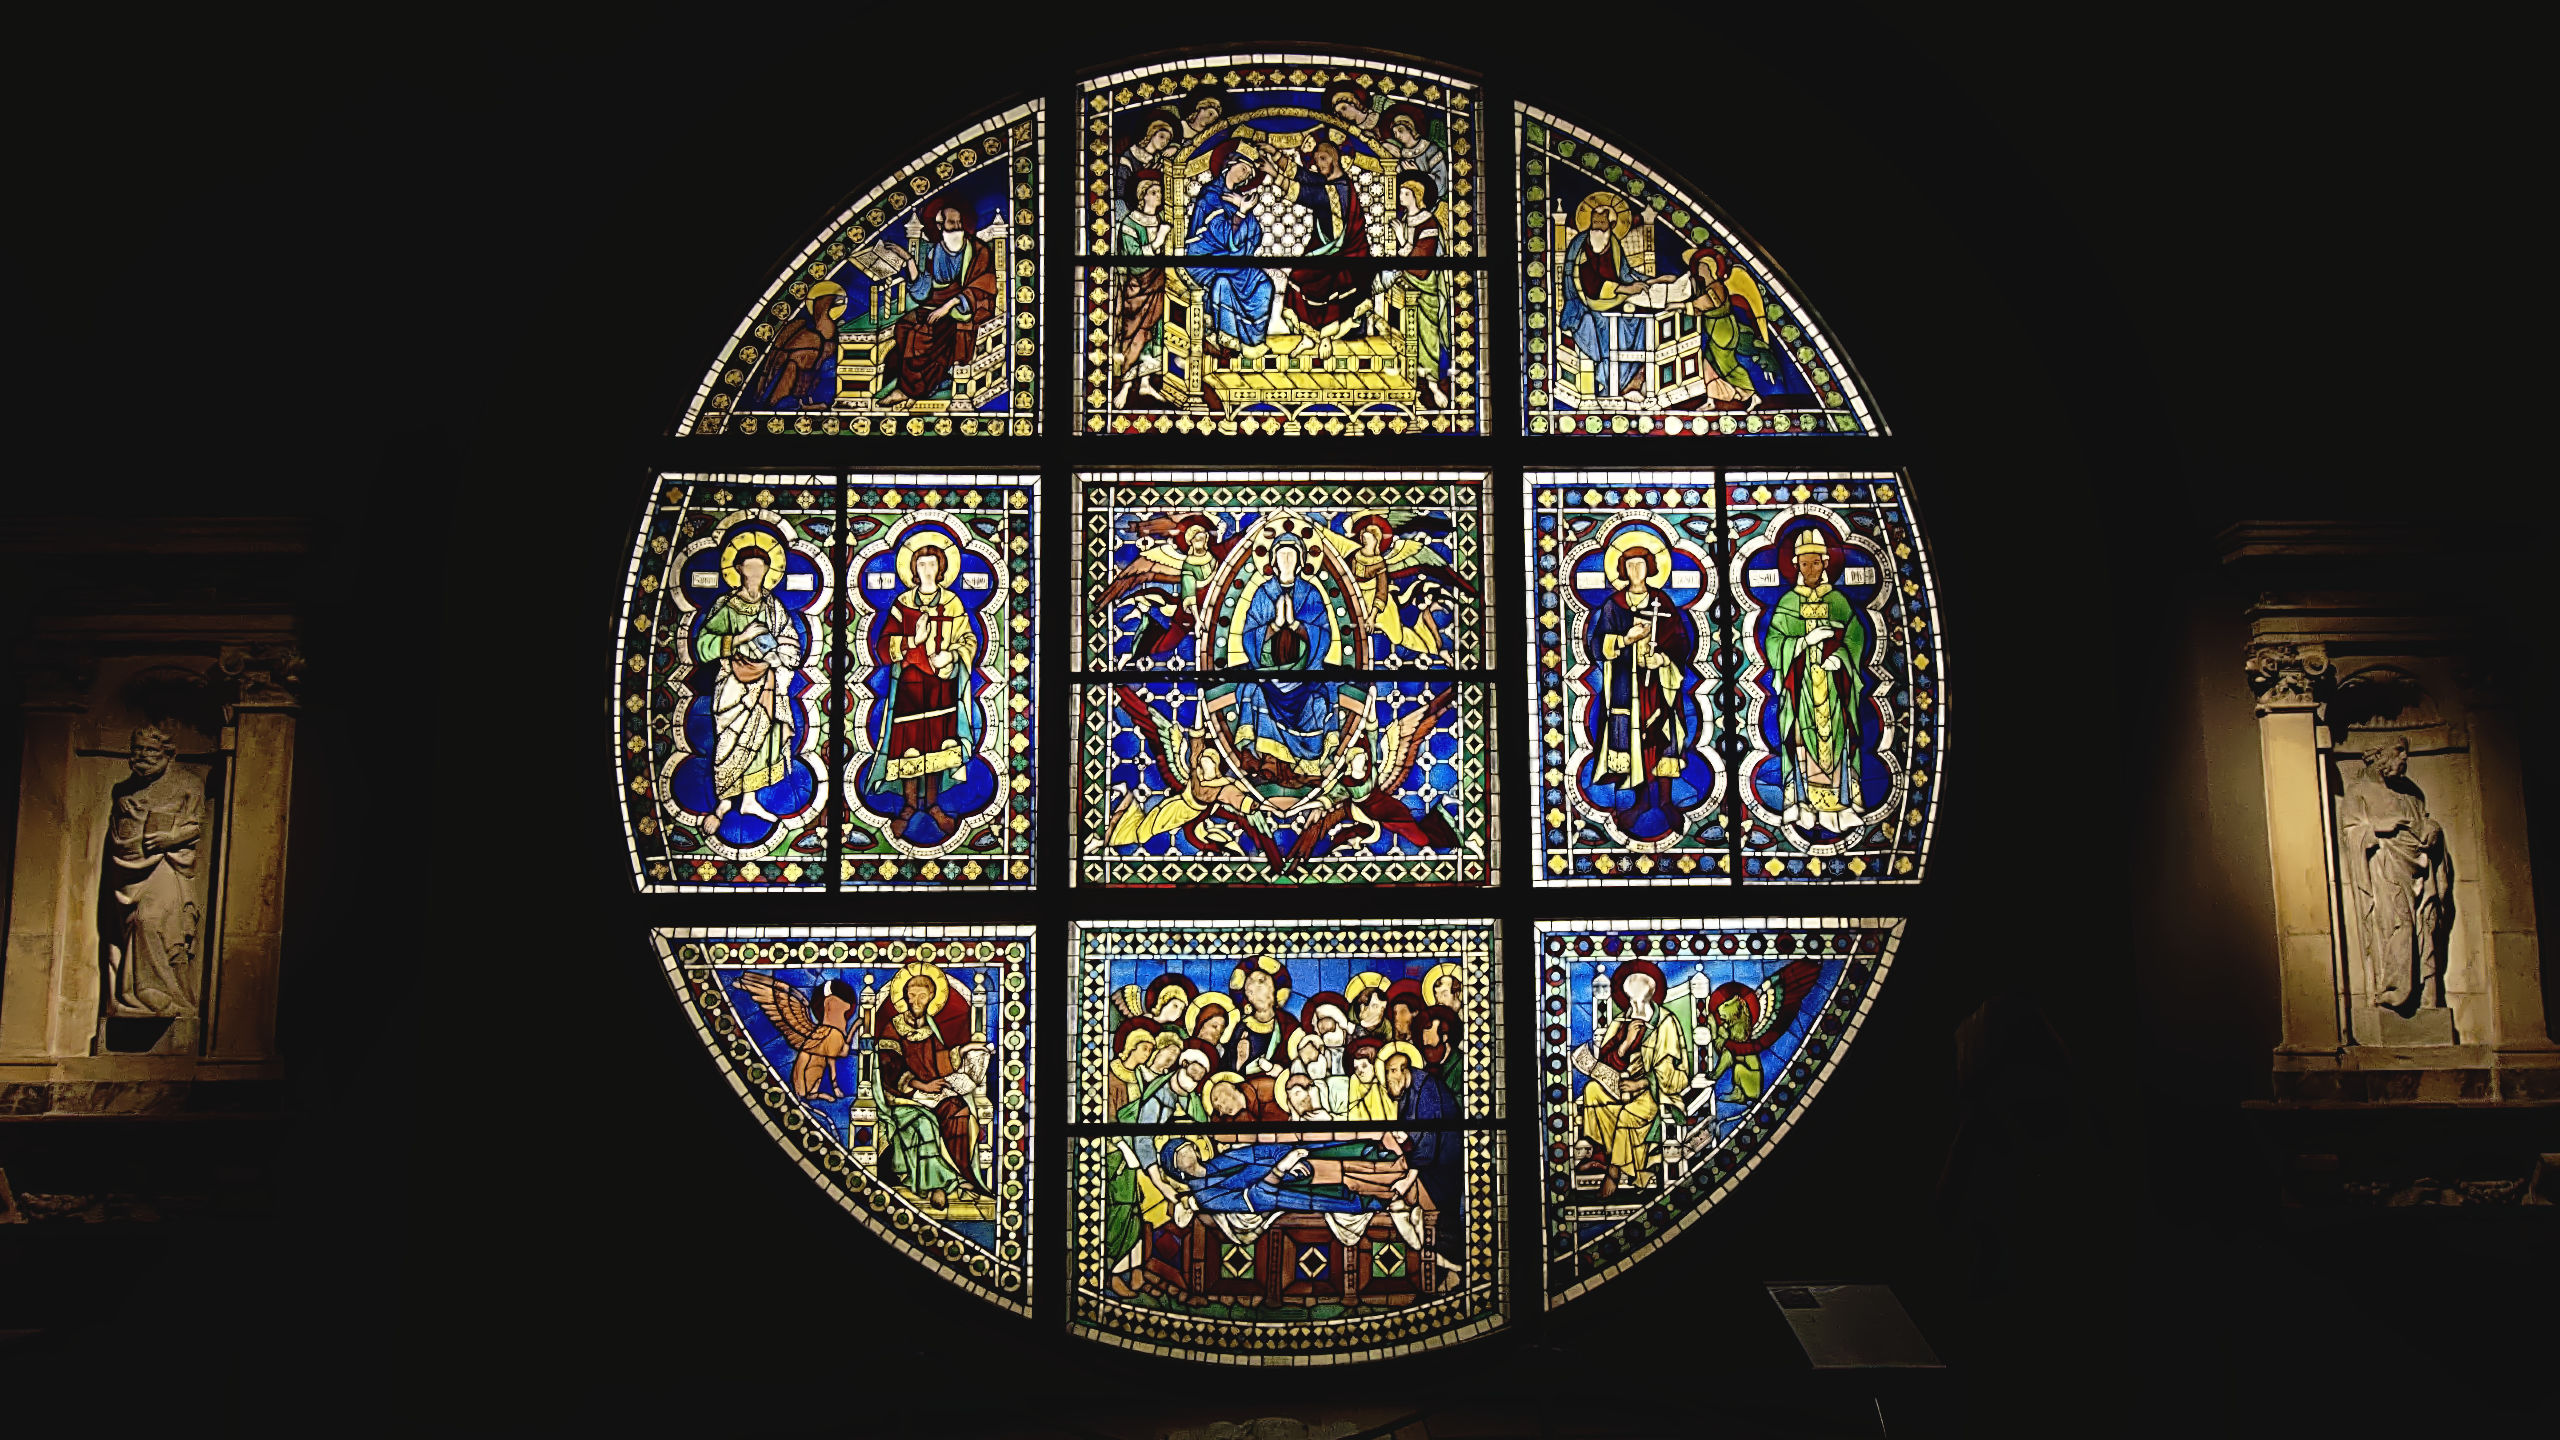 Duccio di Buoninsegna's stained glass window in the Siena Cathedral